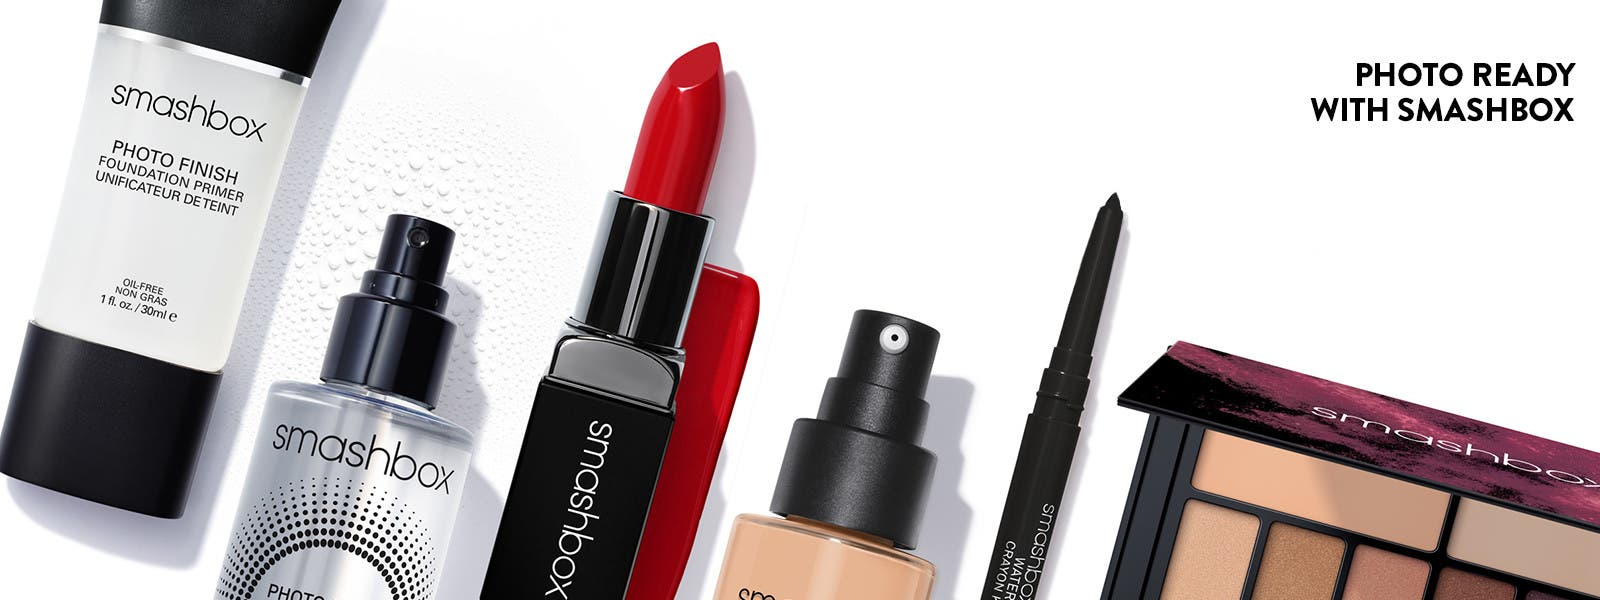 Oct 31,  · Earn 5% cash back at Smashbox Shop Now You may earn 5% cash back, up to a maximum of $ per transaction, for each qualifying purchase made at sanikarginet.ml